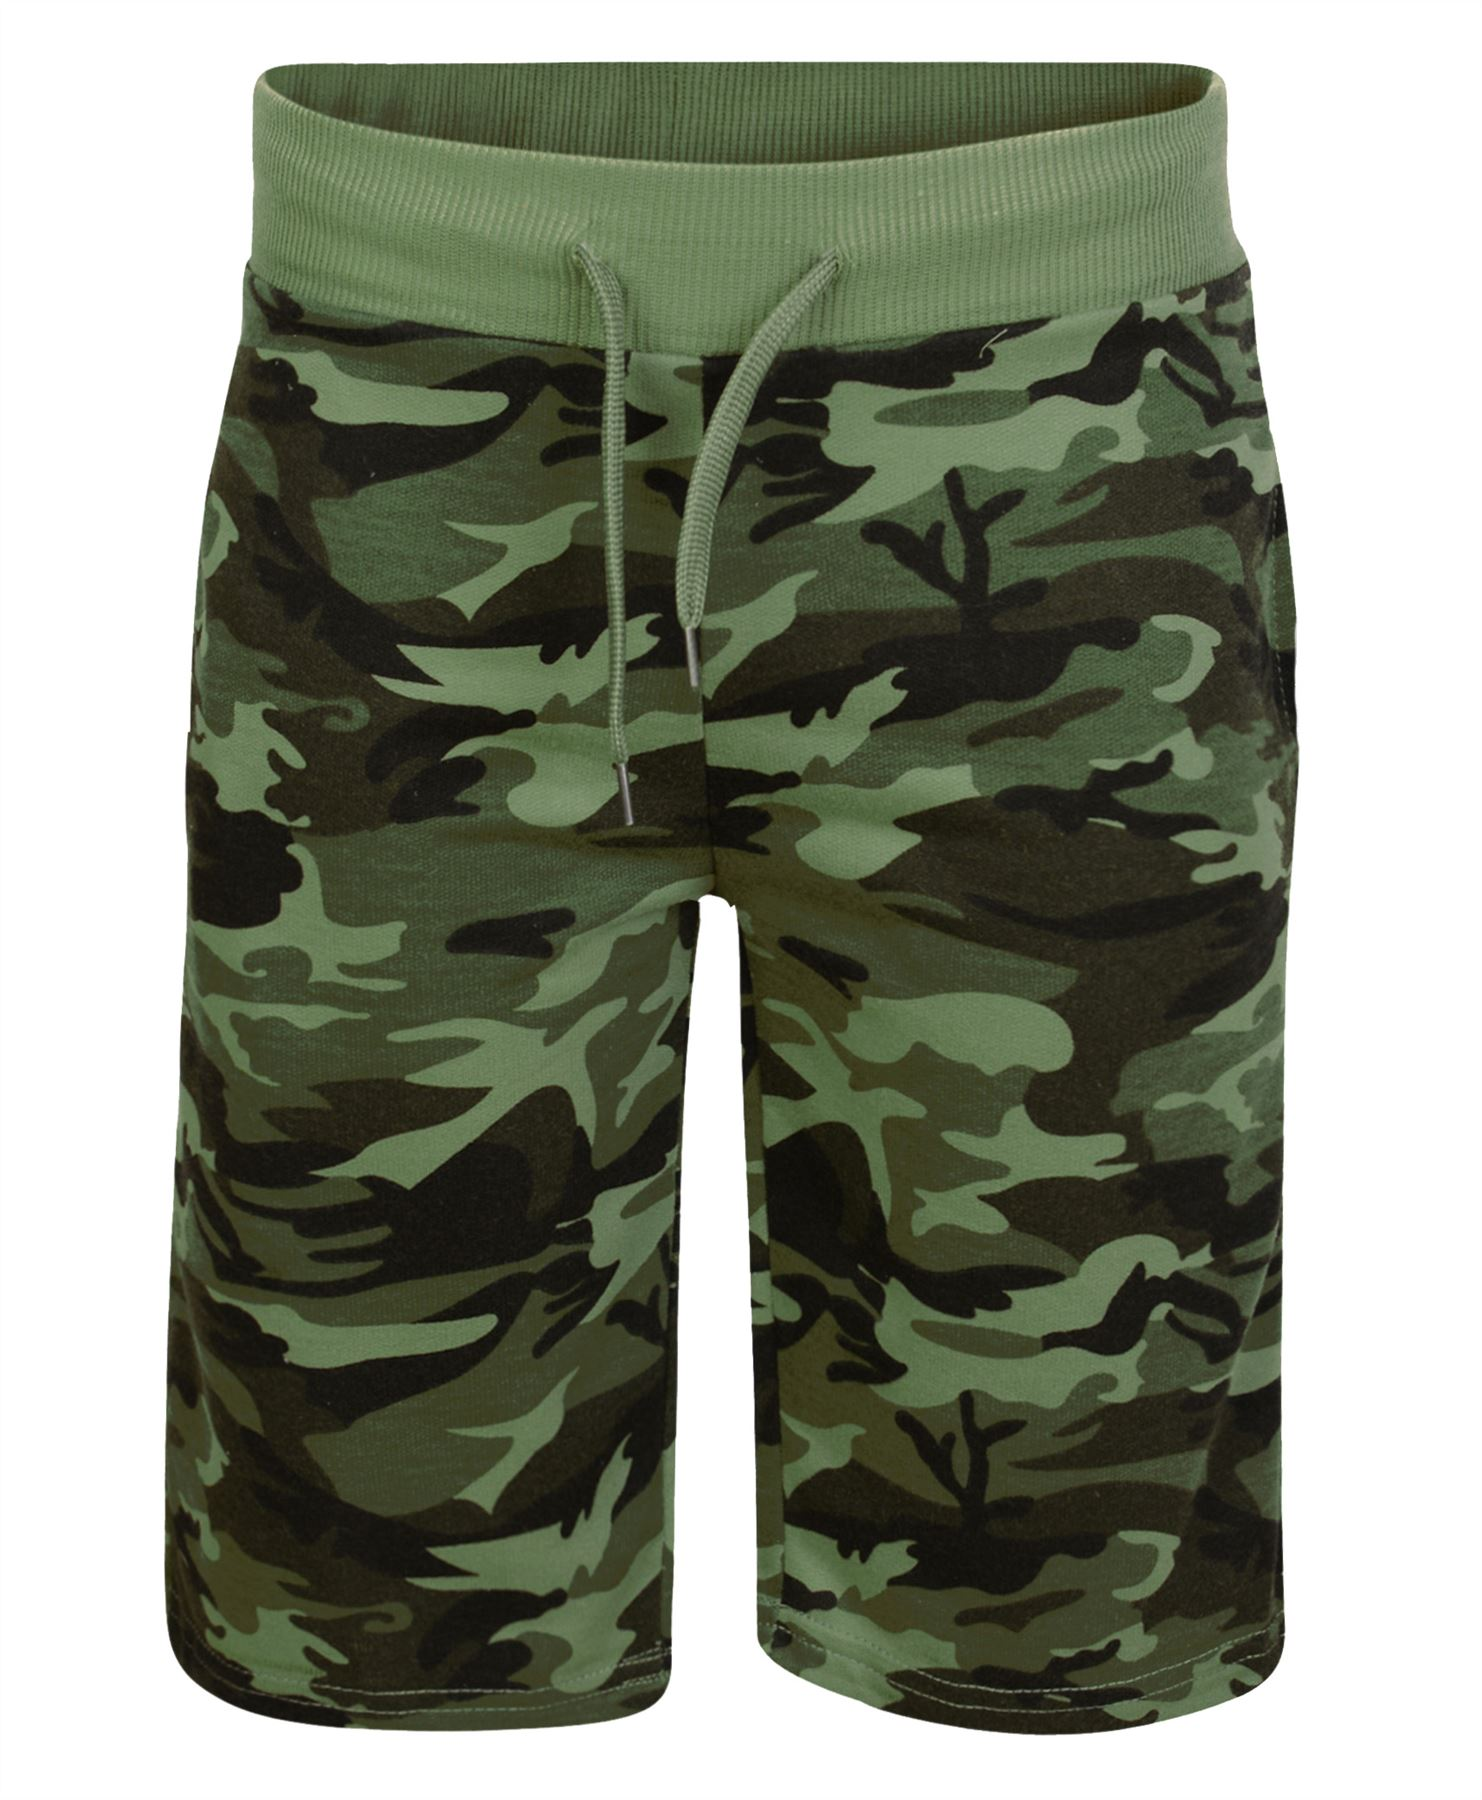 Quality Clothing, Camo Clothing, and Kids' Camo Clothing at competitive prices.